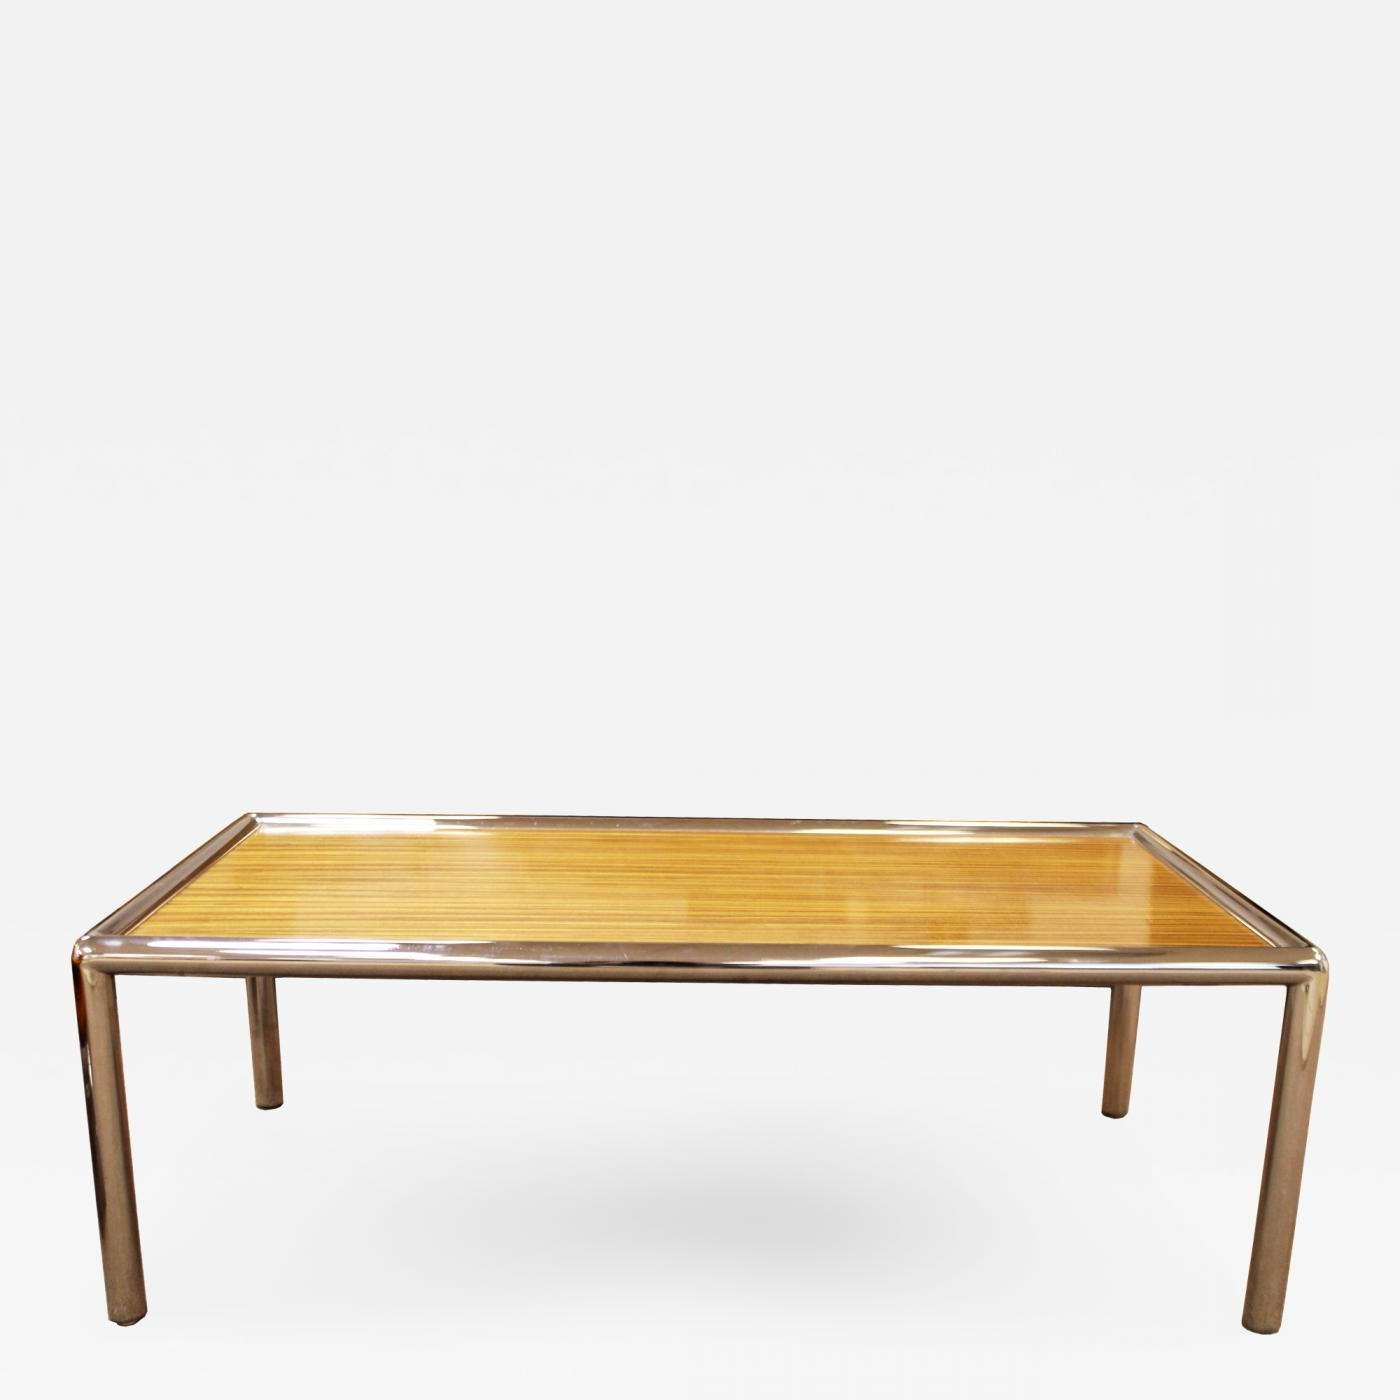 Milo Baughman – Mid Century Modern Zebra Wood Tubular Chrome Within Well Known Chrome And Wood Coffee Tables (View 11 of 20)